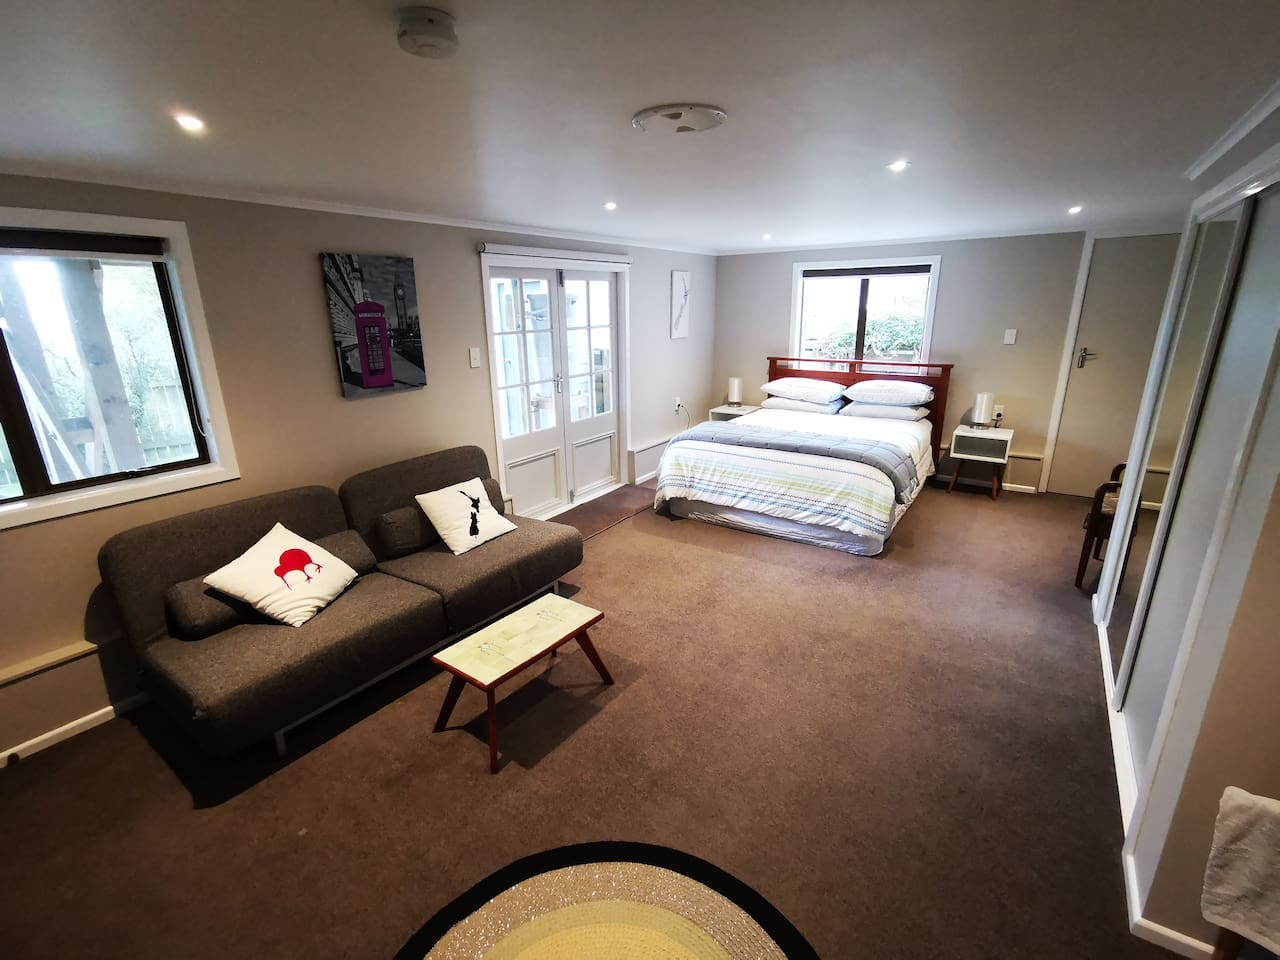 Suite showing Queen bed. Parking is right outside the window behind the bed.